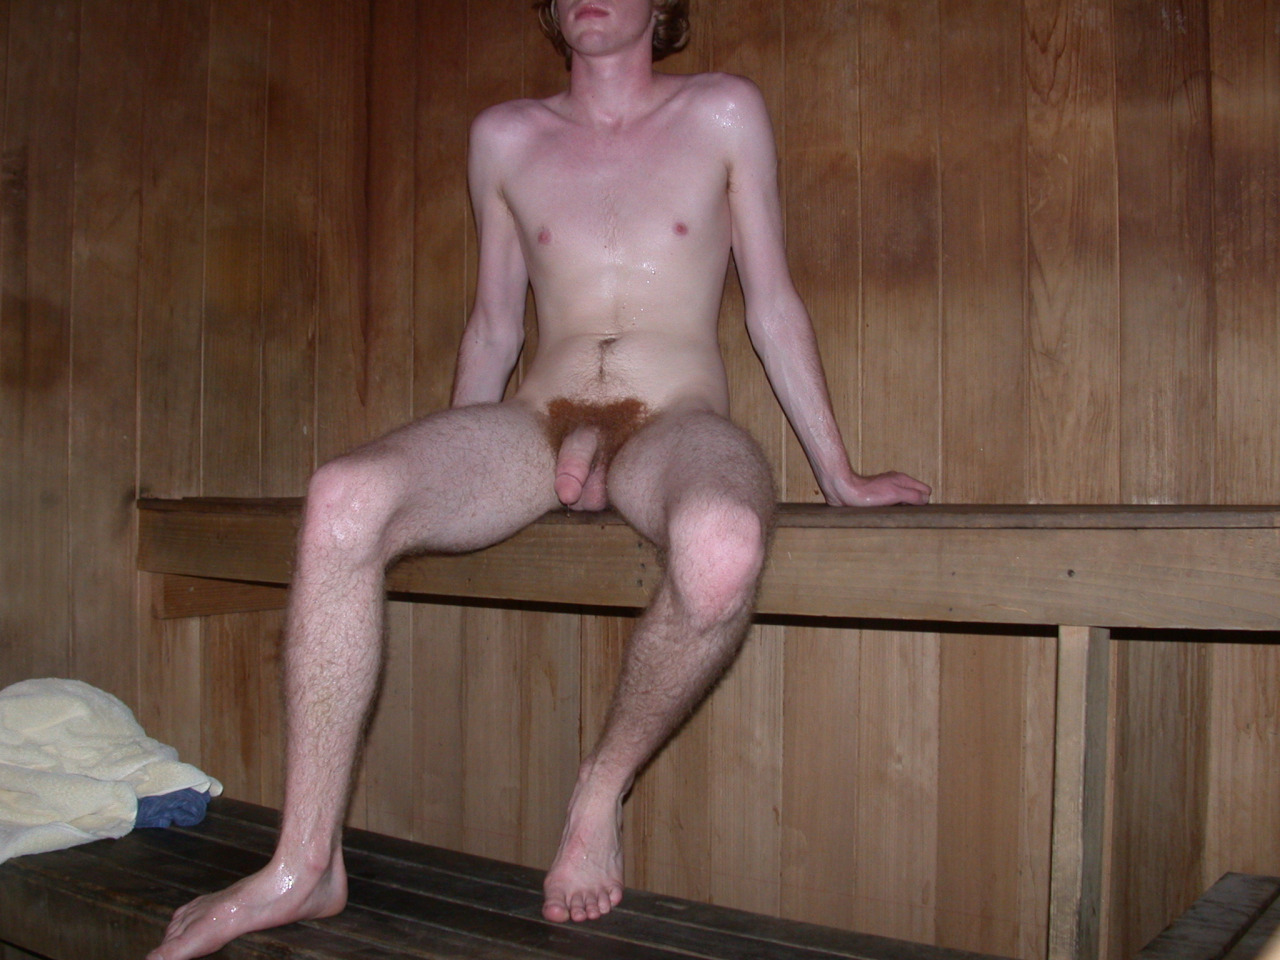 Hung redhead men naked excellent